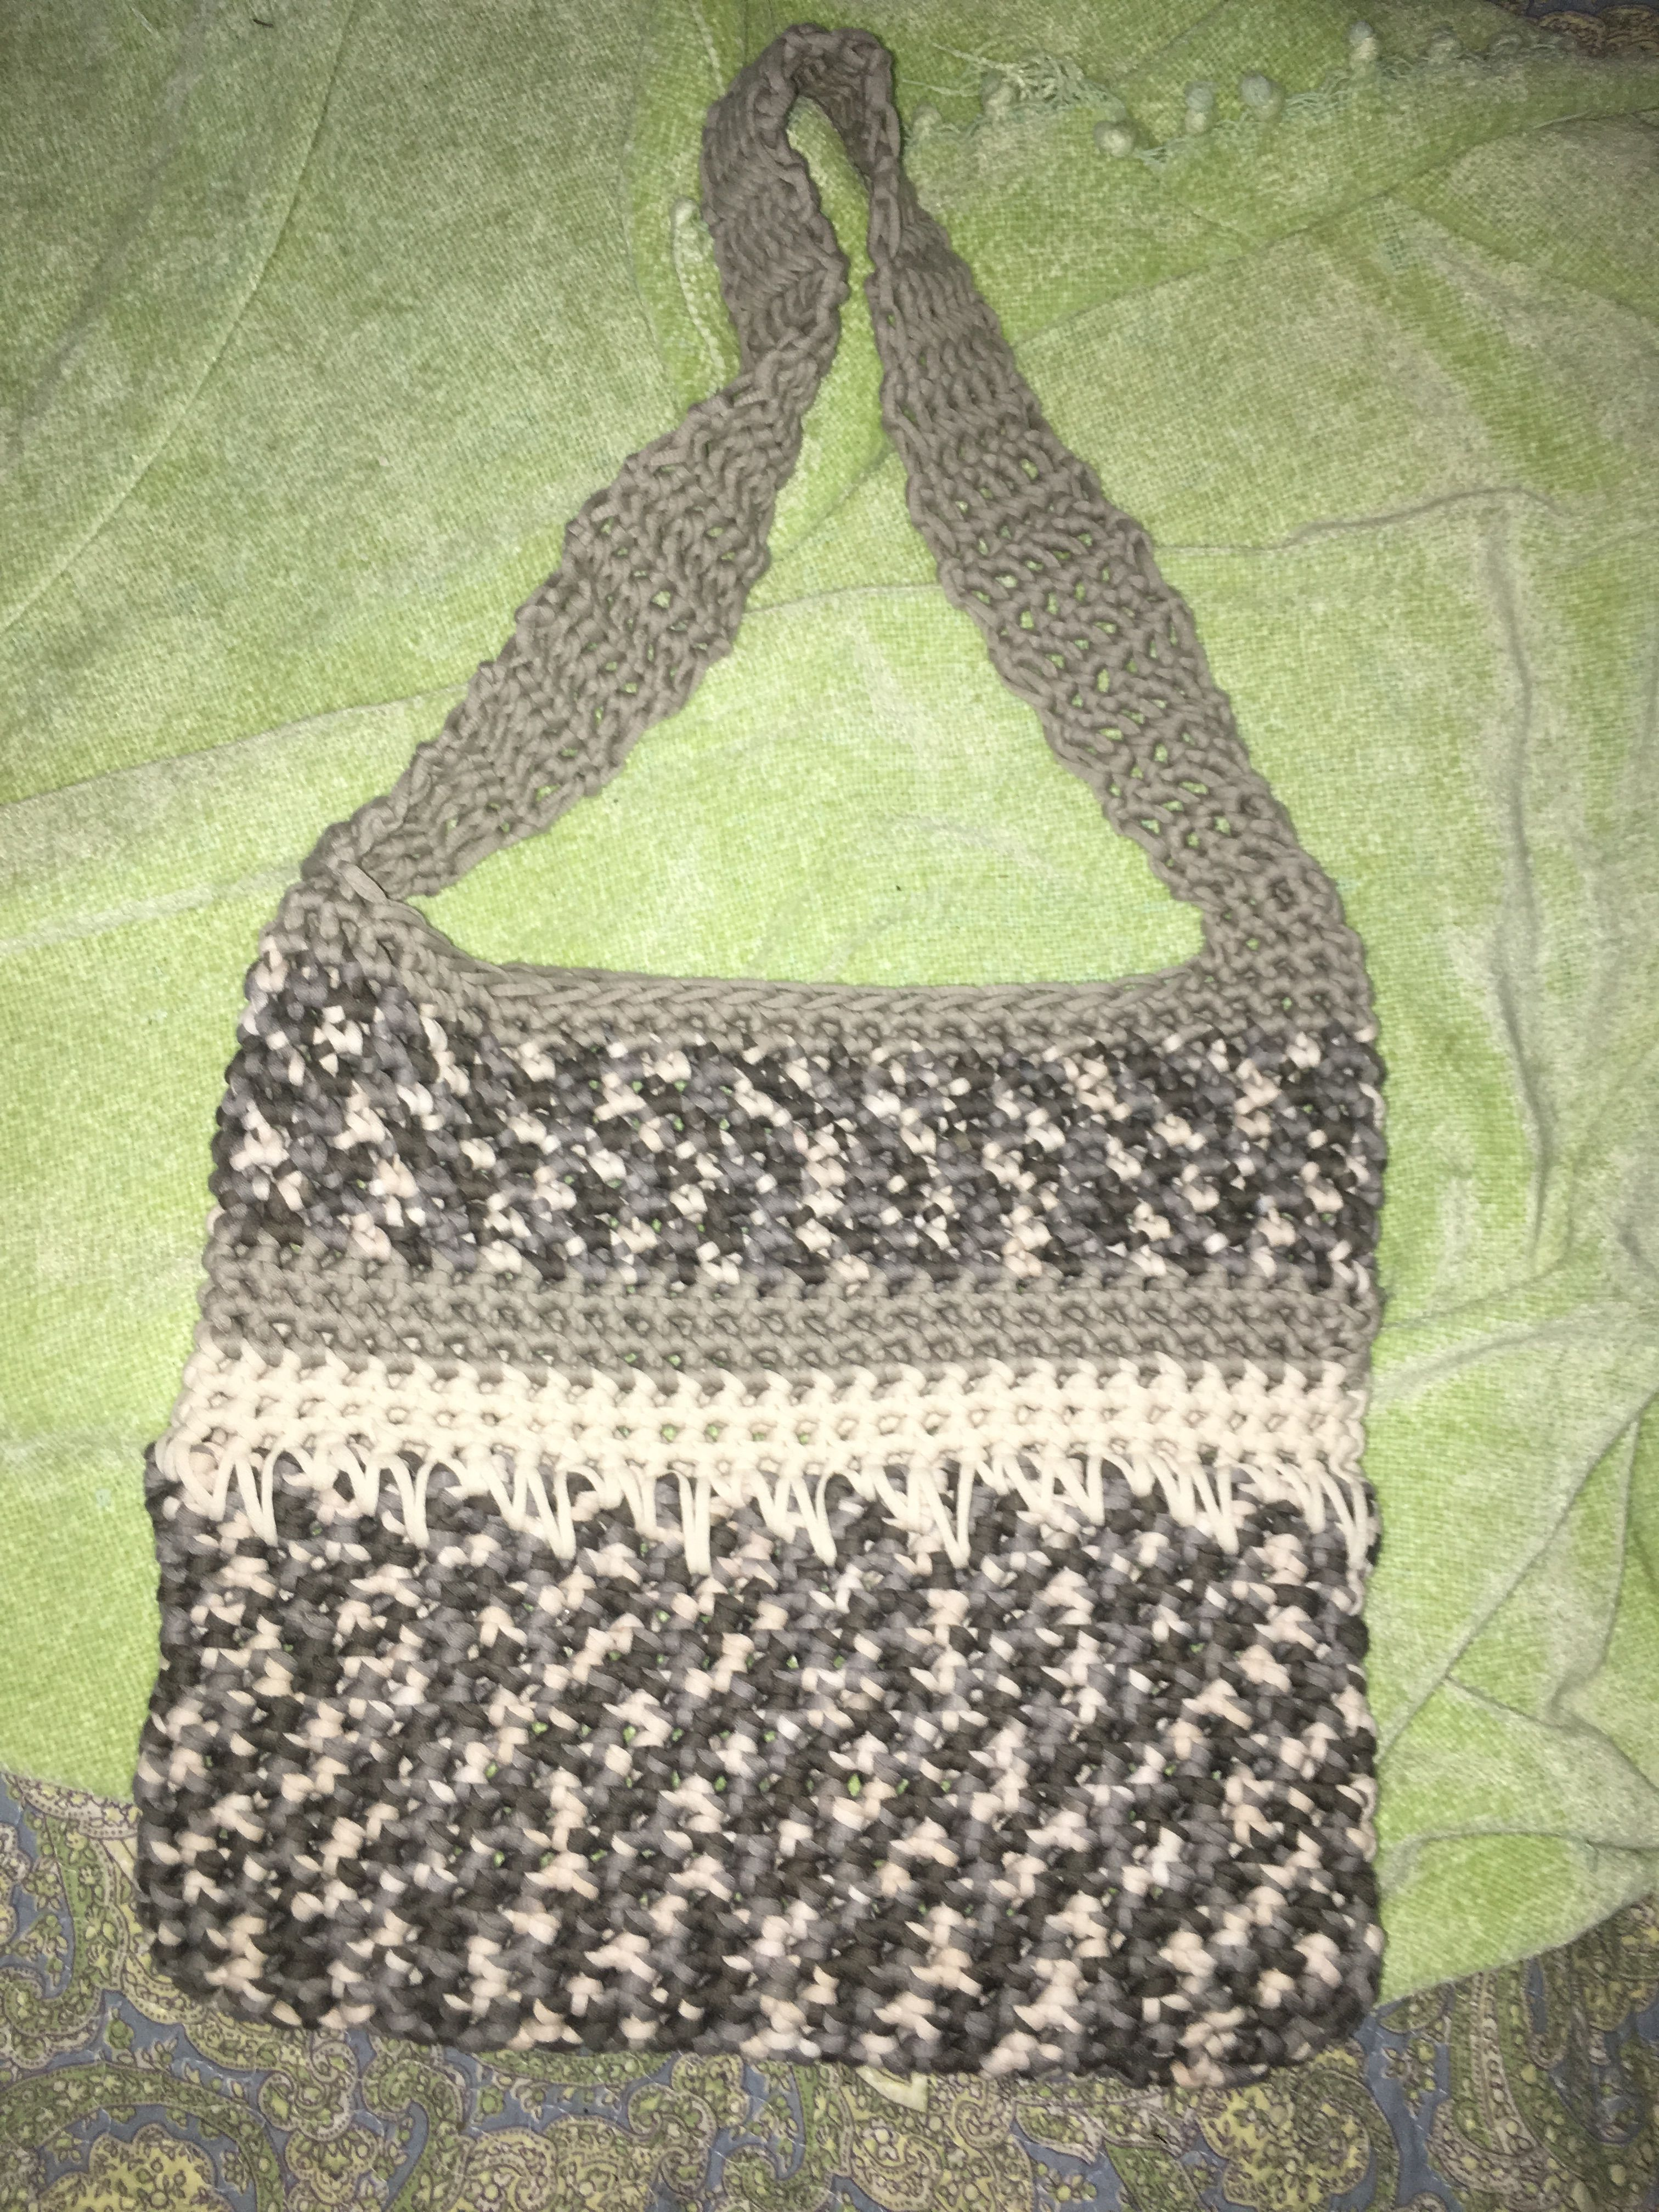 Pin By Pat Fisher On Pats Creations Bags Hobo Fashion